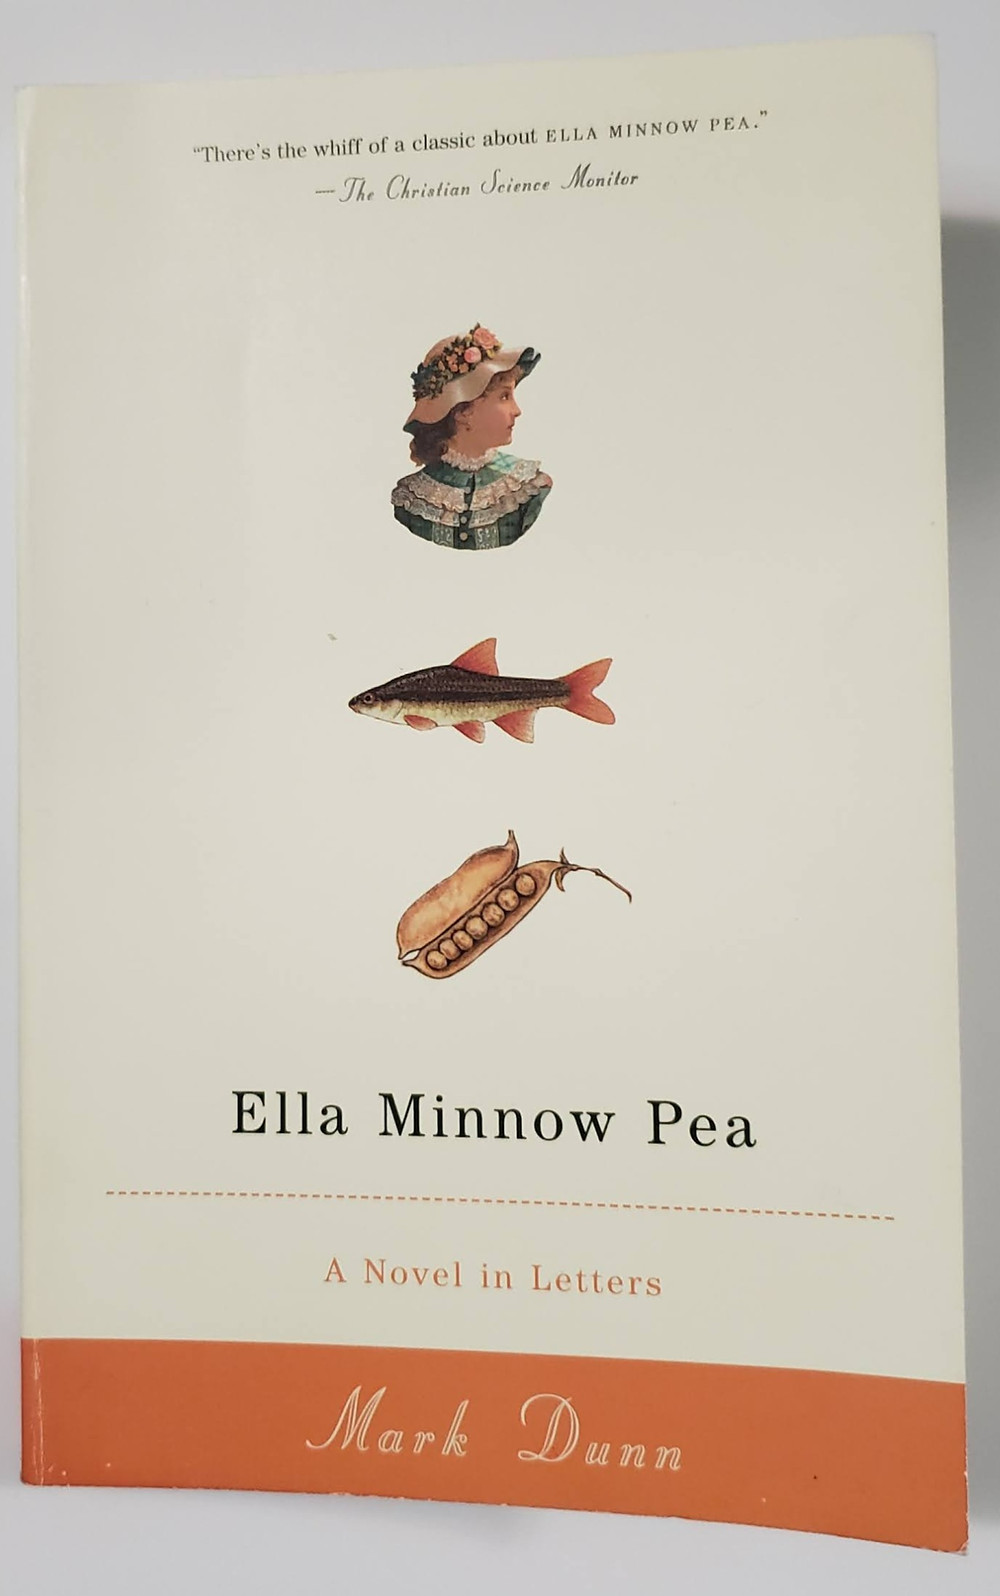 The front facing cover of the book Ella Minnow Pea by Mark Dunn.